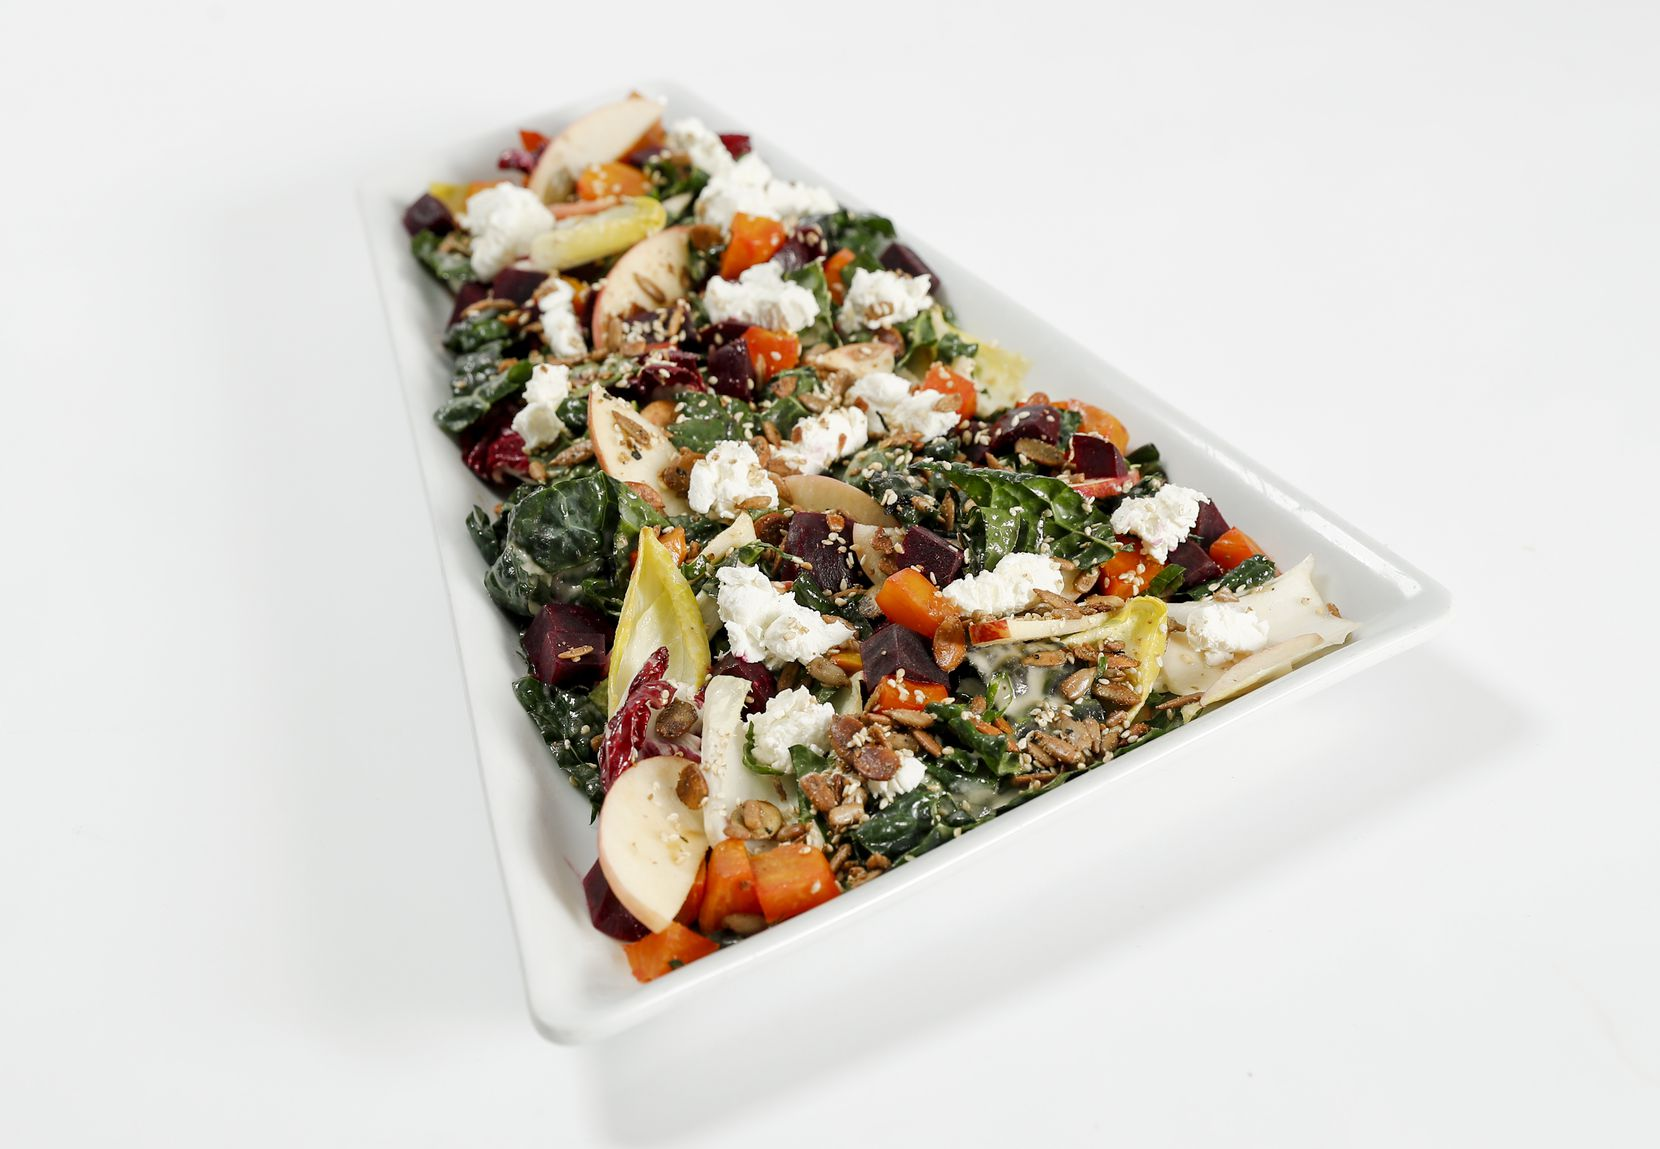 Tuscan Kale salad available on American Airlines' new Flagship Lounge menu and on select flights in first class.